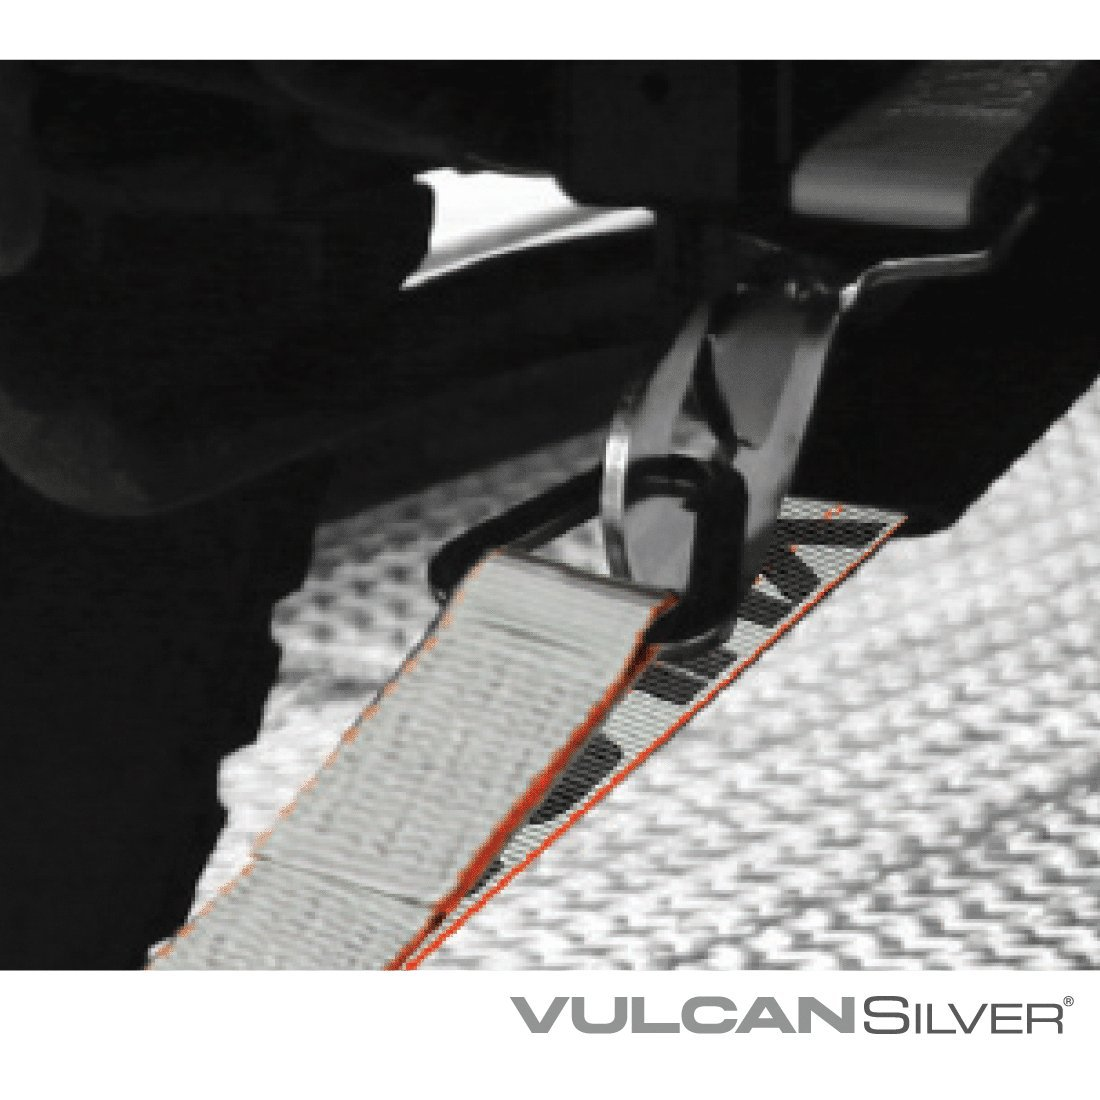 3,300 lbs 2 x 102 - Pack of 4 Safe Working Load Vulcan Brands Vulcan Silver Series 1-Ply Flexible Axle Tie Down Combo Strap w//Snap Hook Ratchet